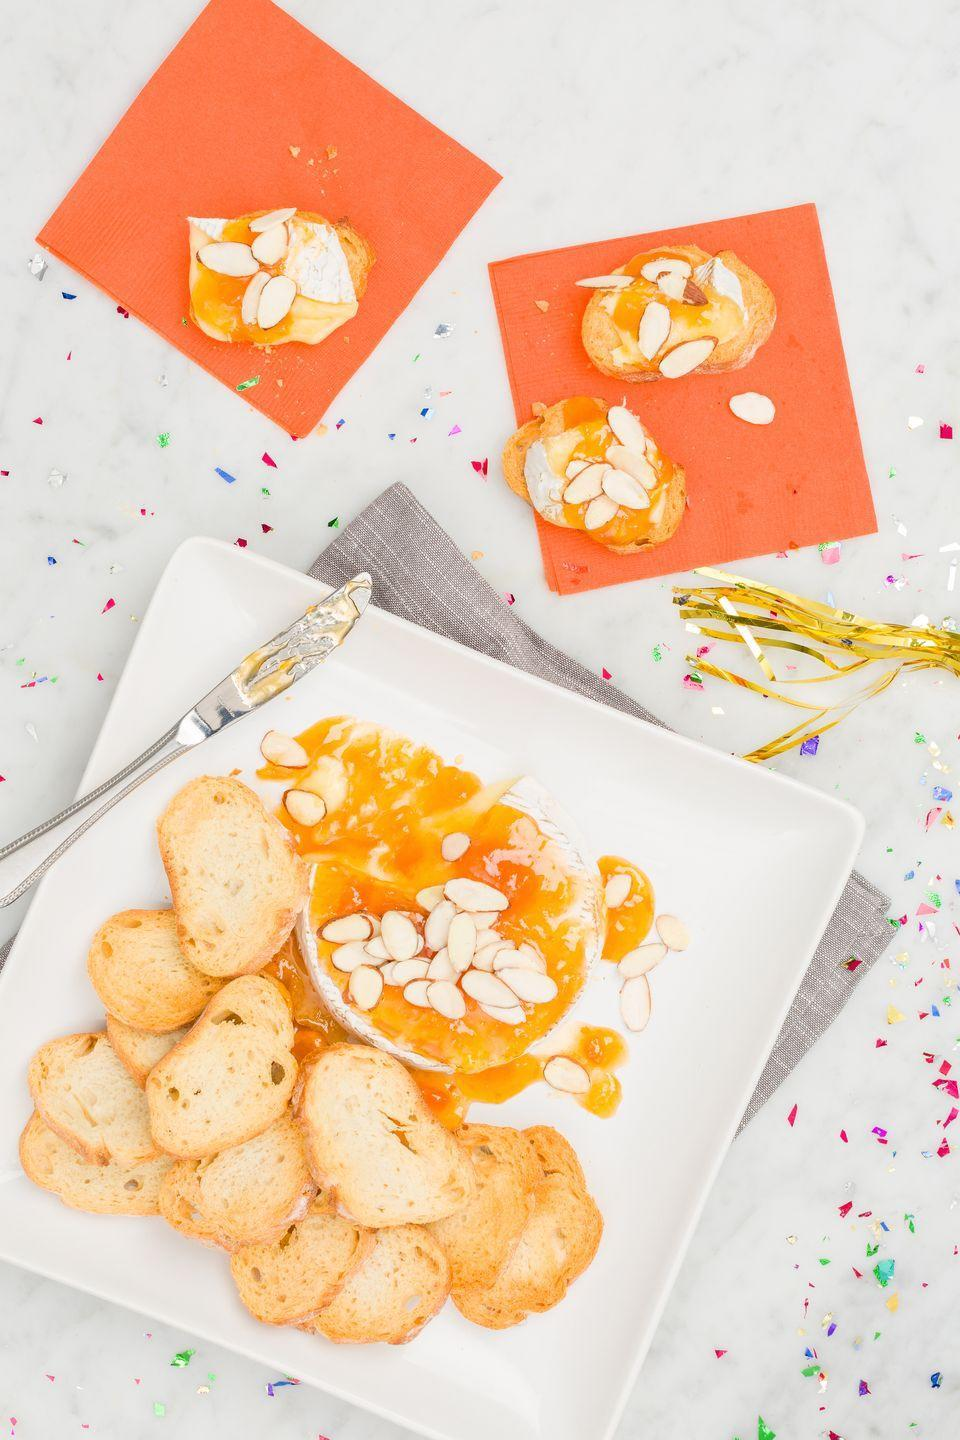 """<p>Your NYE party needs this fancy, stupid-simple appetizer.</p><p>Get the recipe from <a href=""""https://www.delish.com/cooking/recipe-ideas/recipes/a44686/baked-brie-recipe/"""" rel=""""nofollow noopener"""" target=""""_blank"""" data-ylk=""""slk:Delish"""" class=""""link rapid-noclick-resp"""">Delish</a>.</p>"""